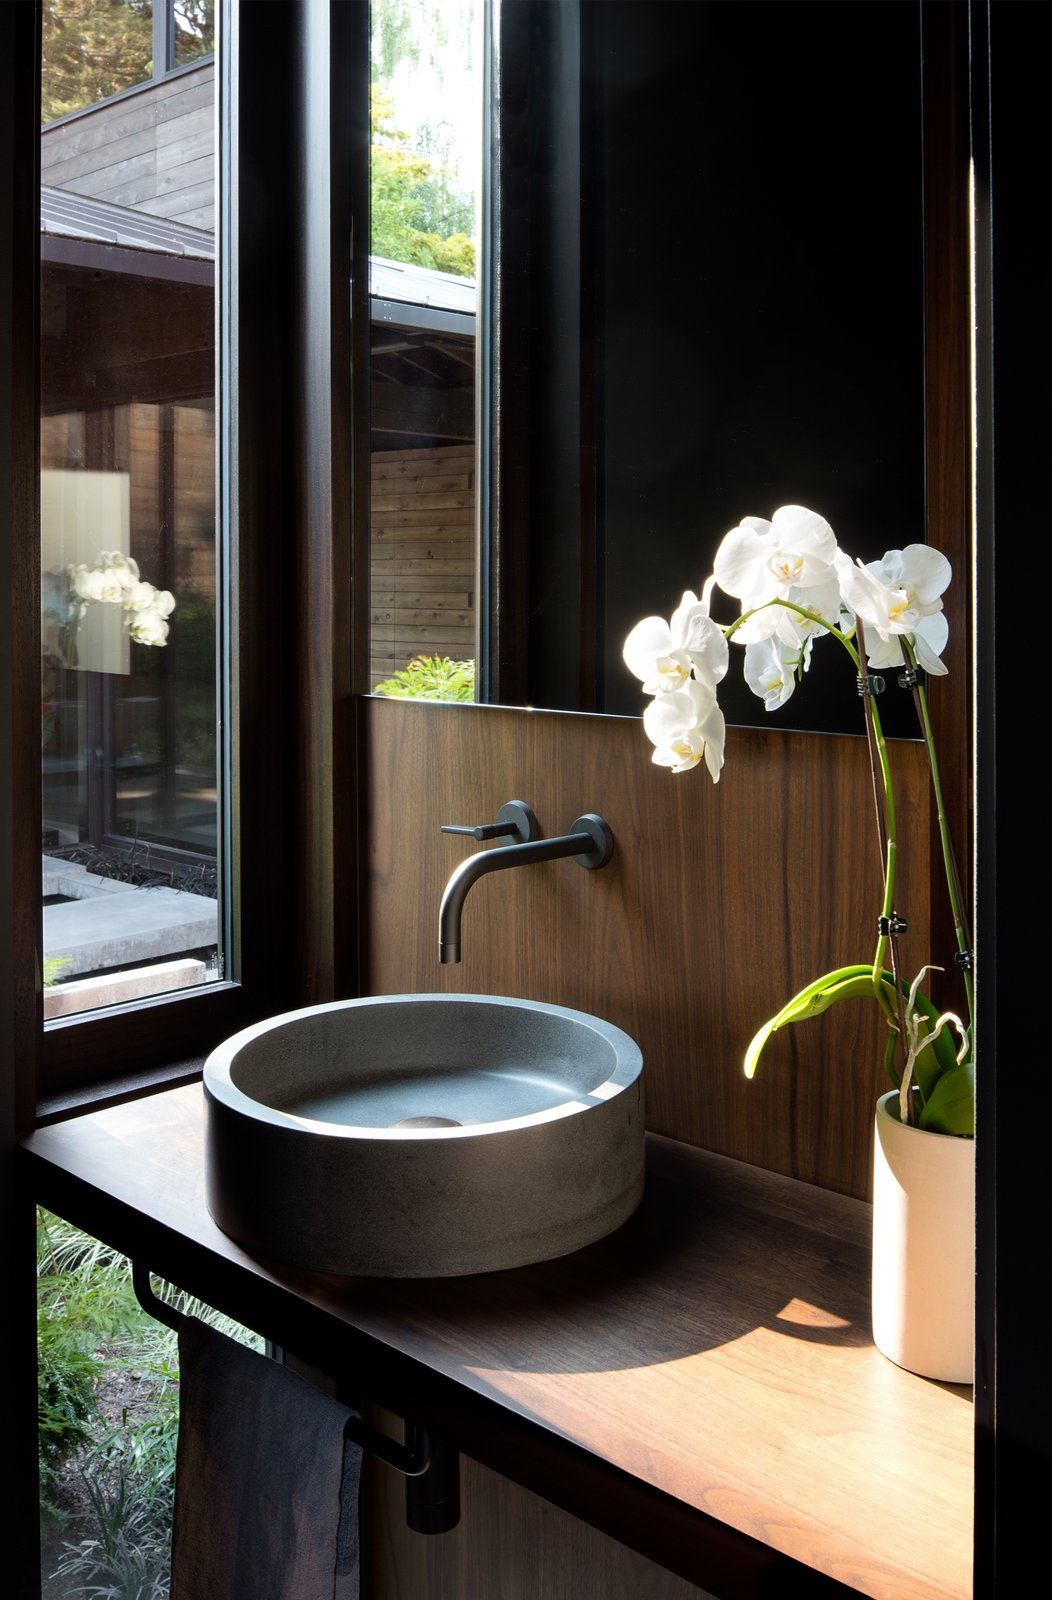 Laurelhurst Residence Tagged: Bath Room and Wood Counter.  Laurelhurst Residence by mw|works